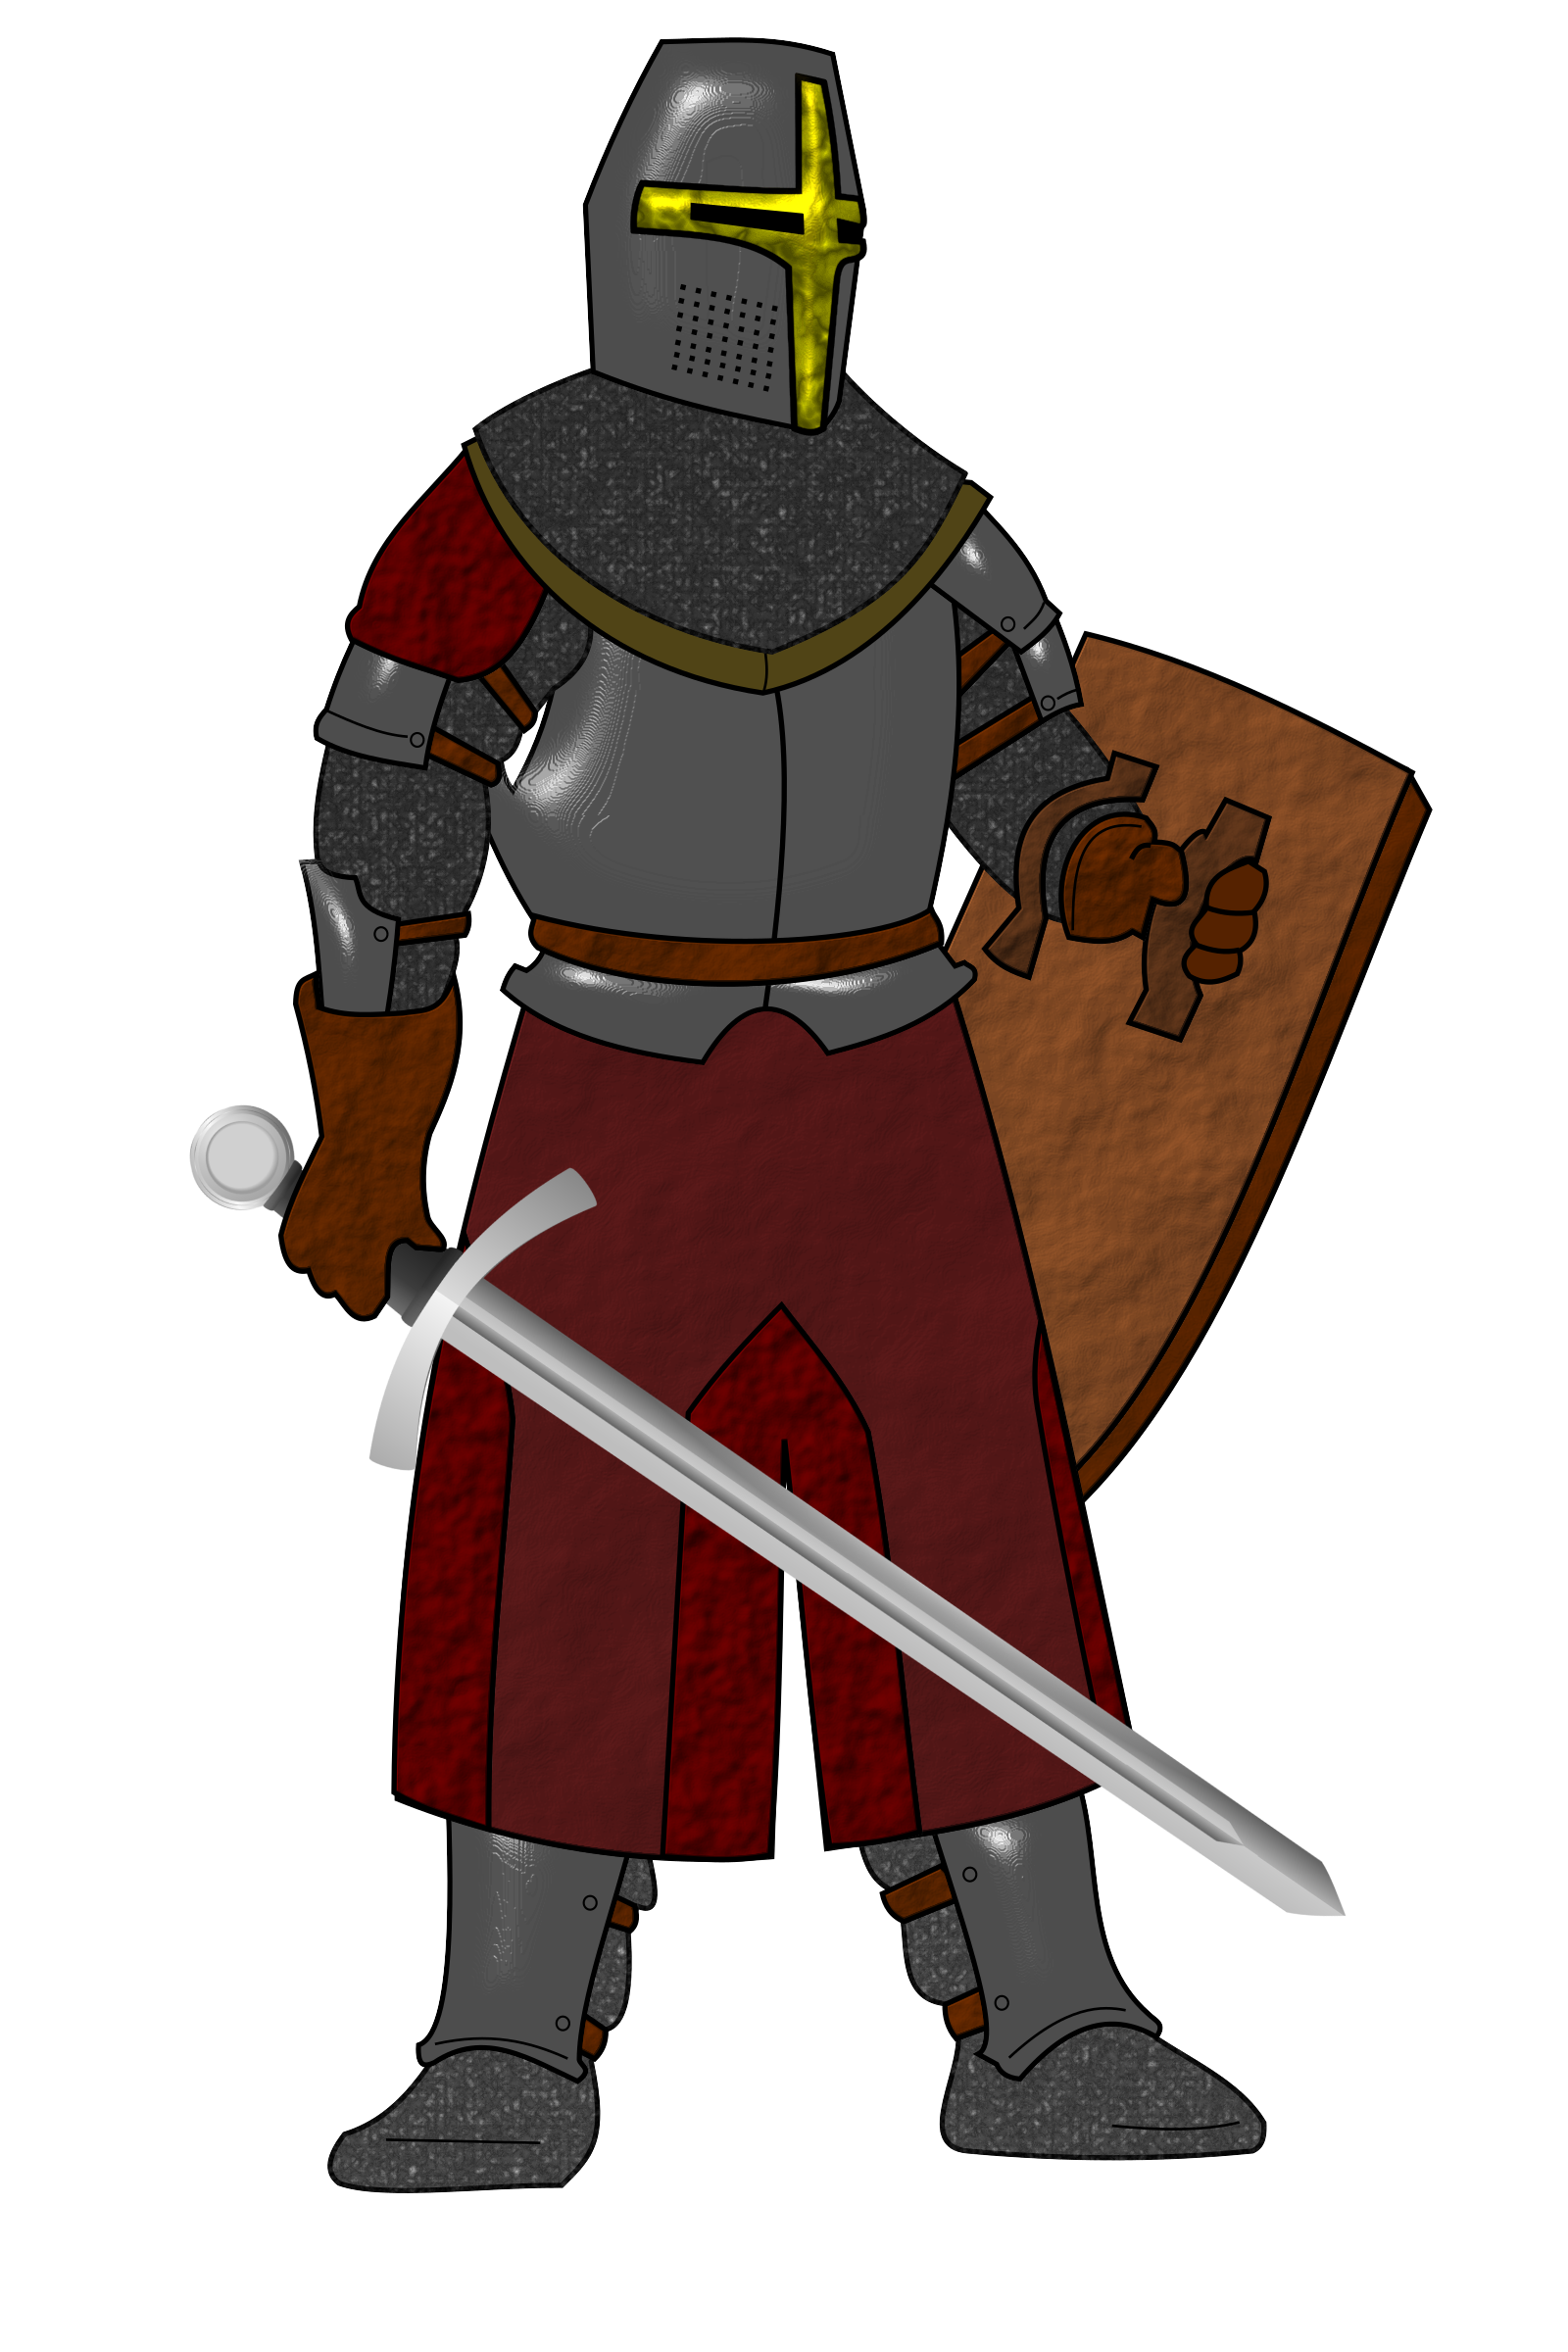 Steel plate armor by Flying Dutchman